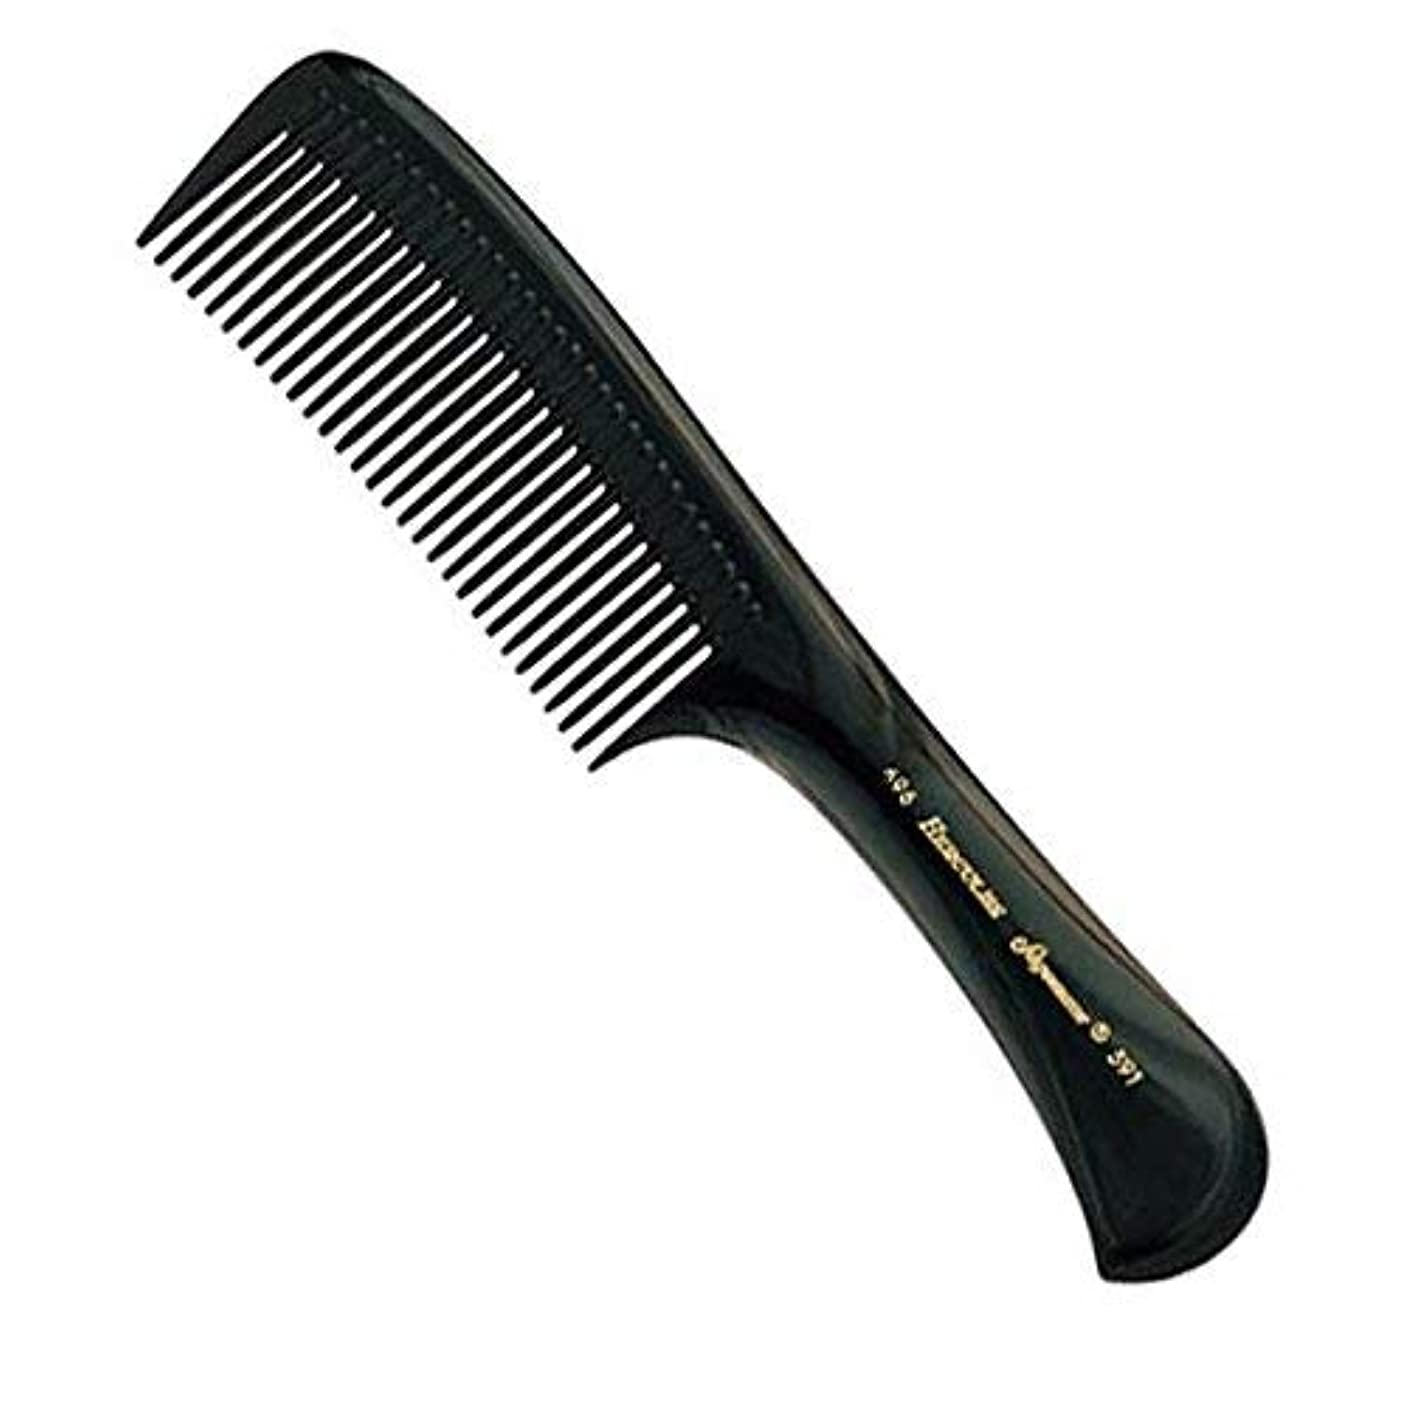 差望み悪党Hercules Sagemann Seamless Handle Detangling Hair Comb, 22.7 cm Length [並行輸入品]